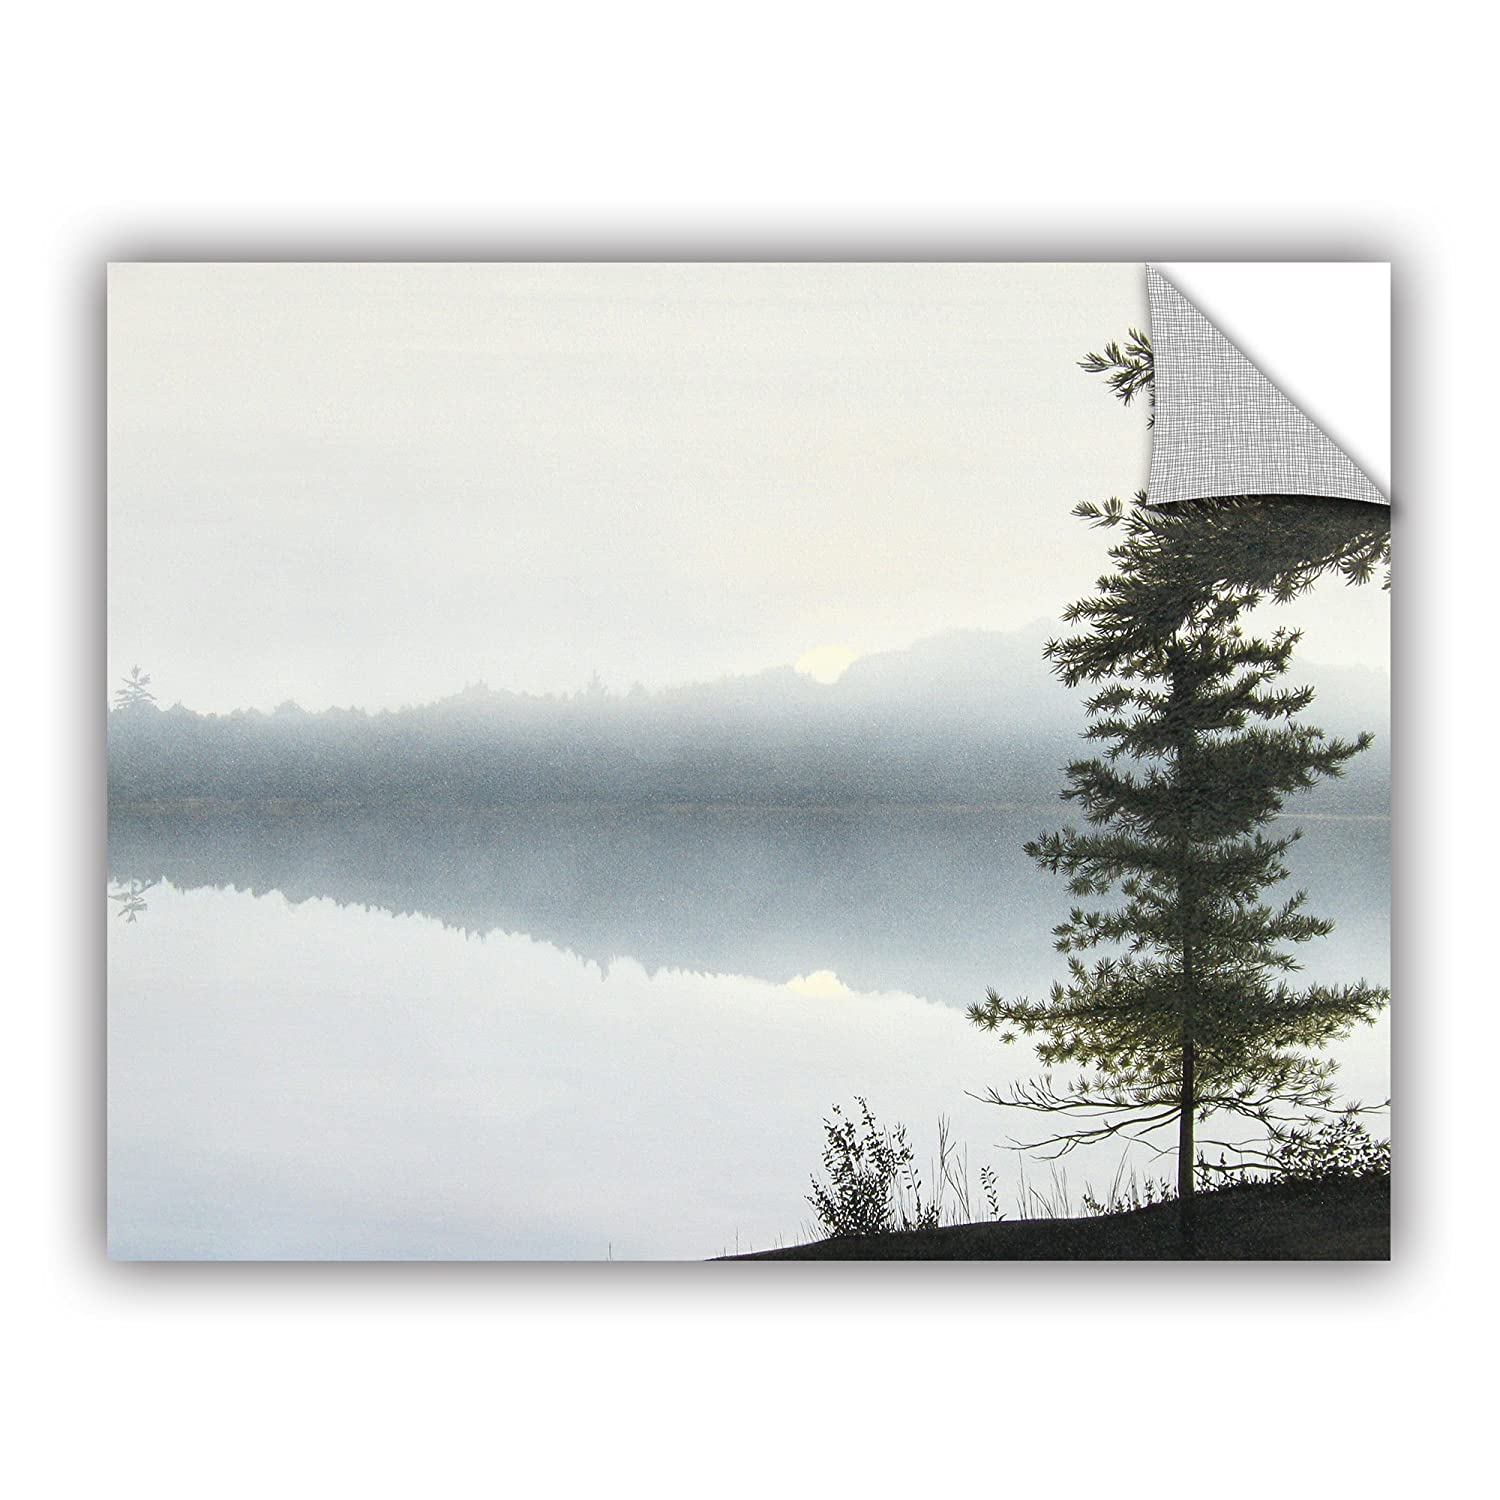 24 by 32 ArtWall Ken Kirshs Morning Fog Hires Appeelz Removable Graphic Wall Art